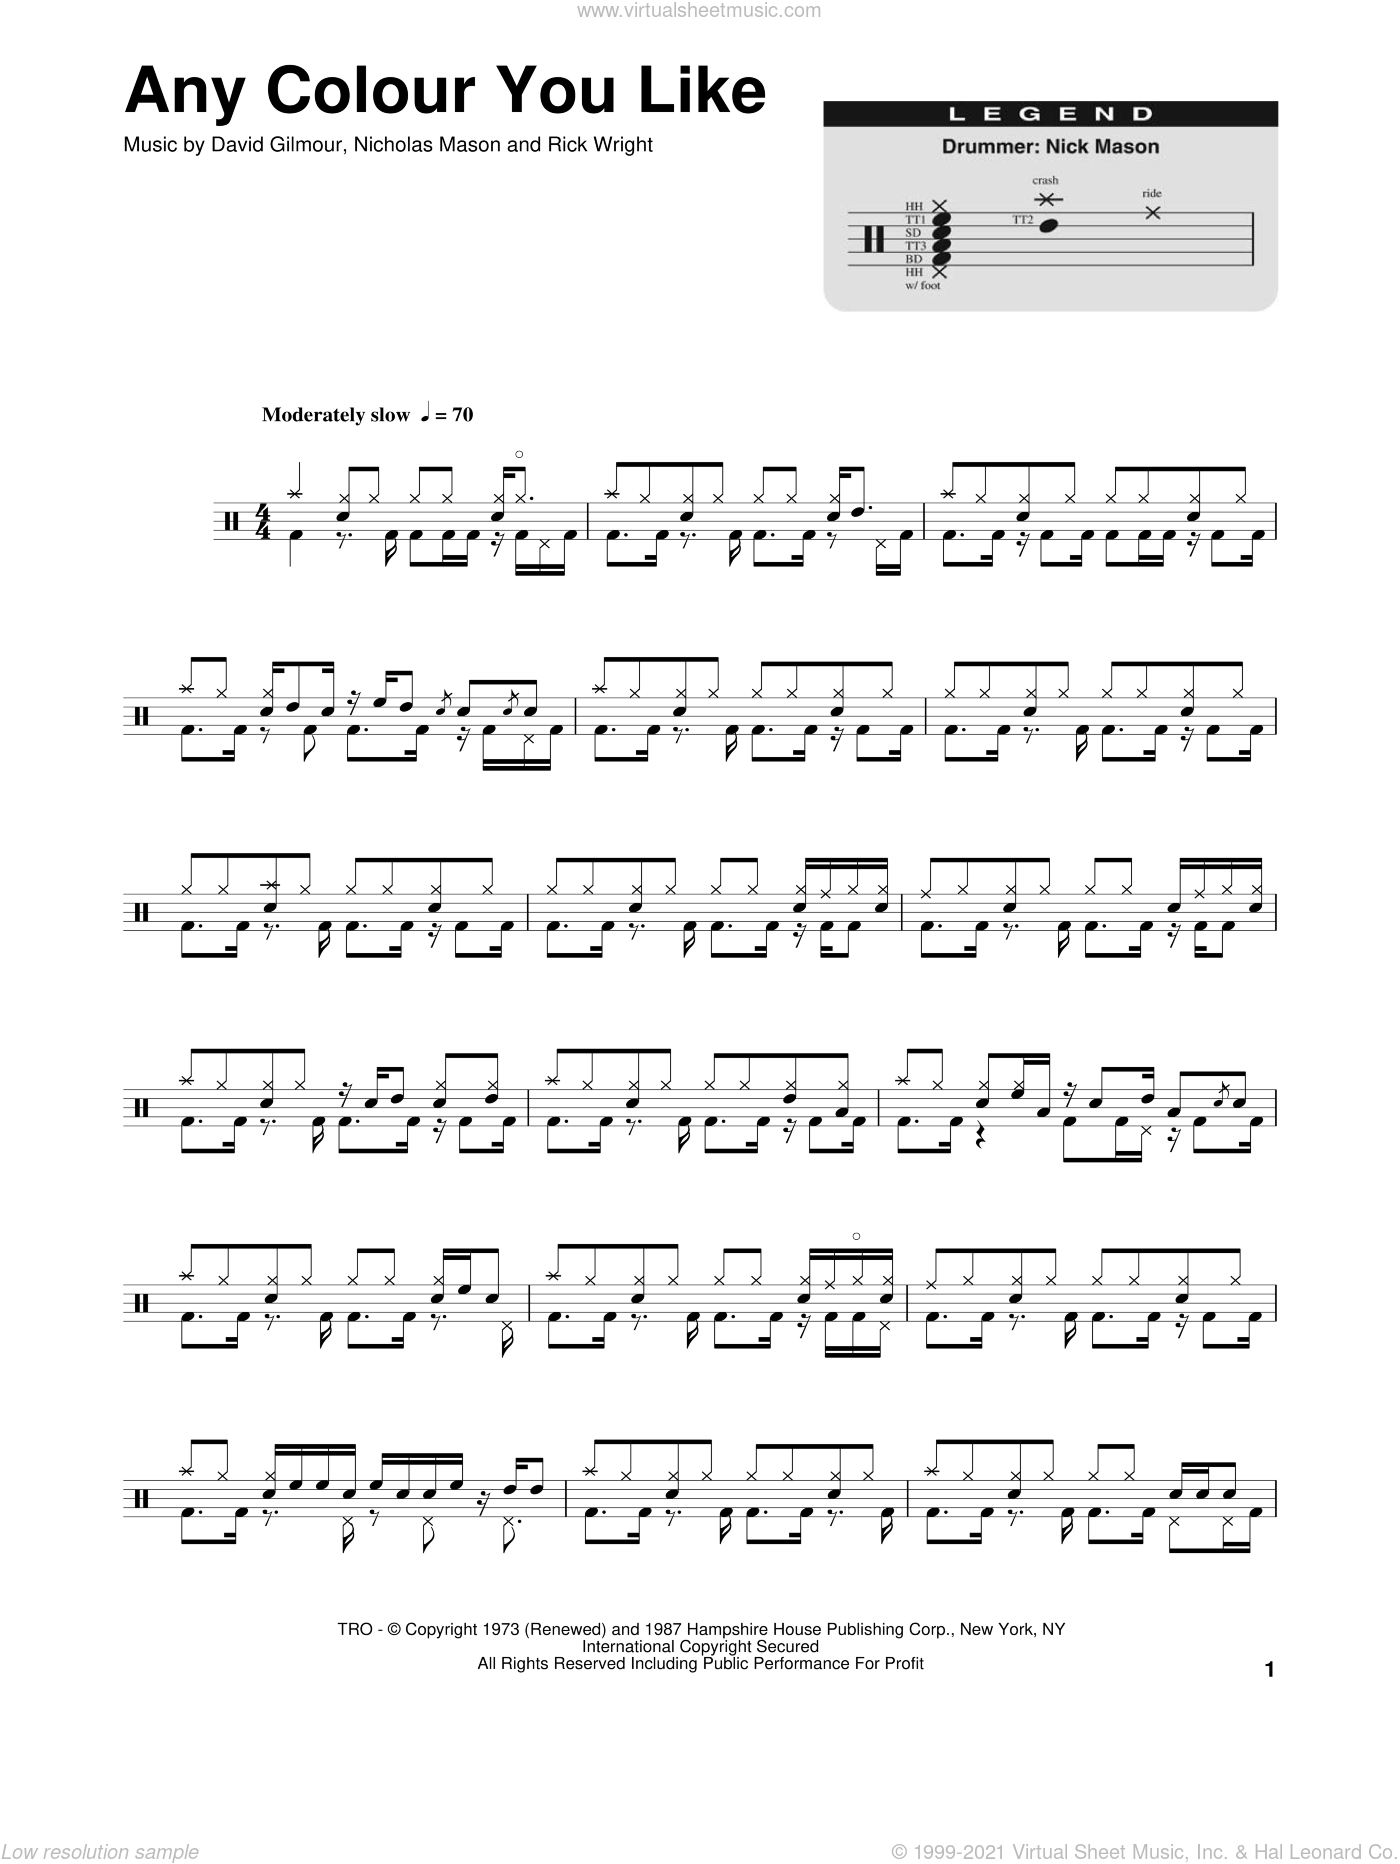 Any Colour You Like sheet music for drums by Pink Floyd, David Gilmour and Richard Wright, intermediate drums. Score Image Preview.